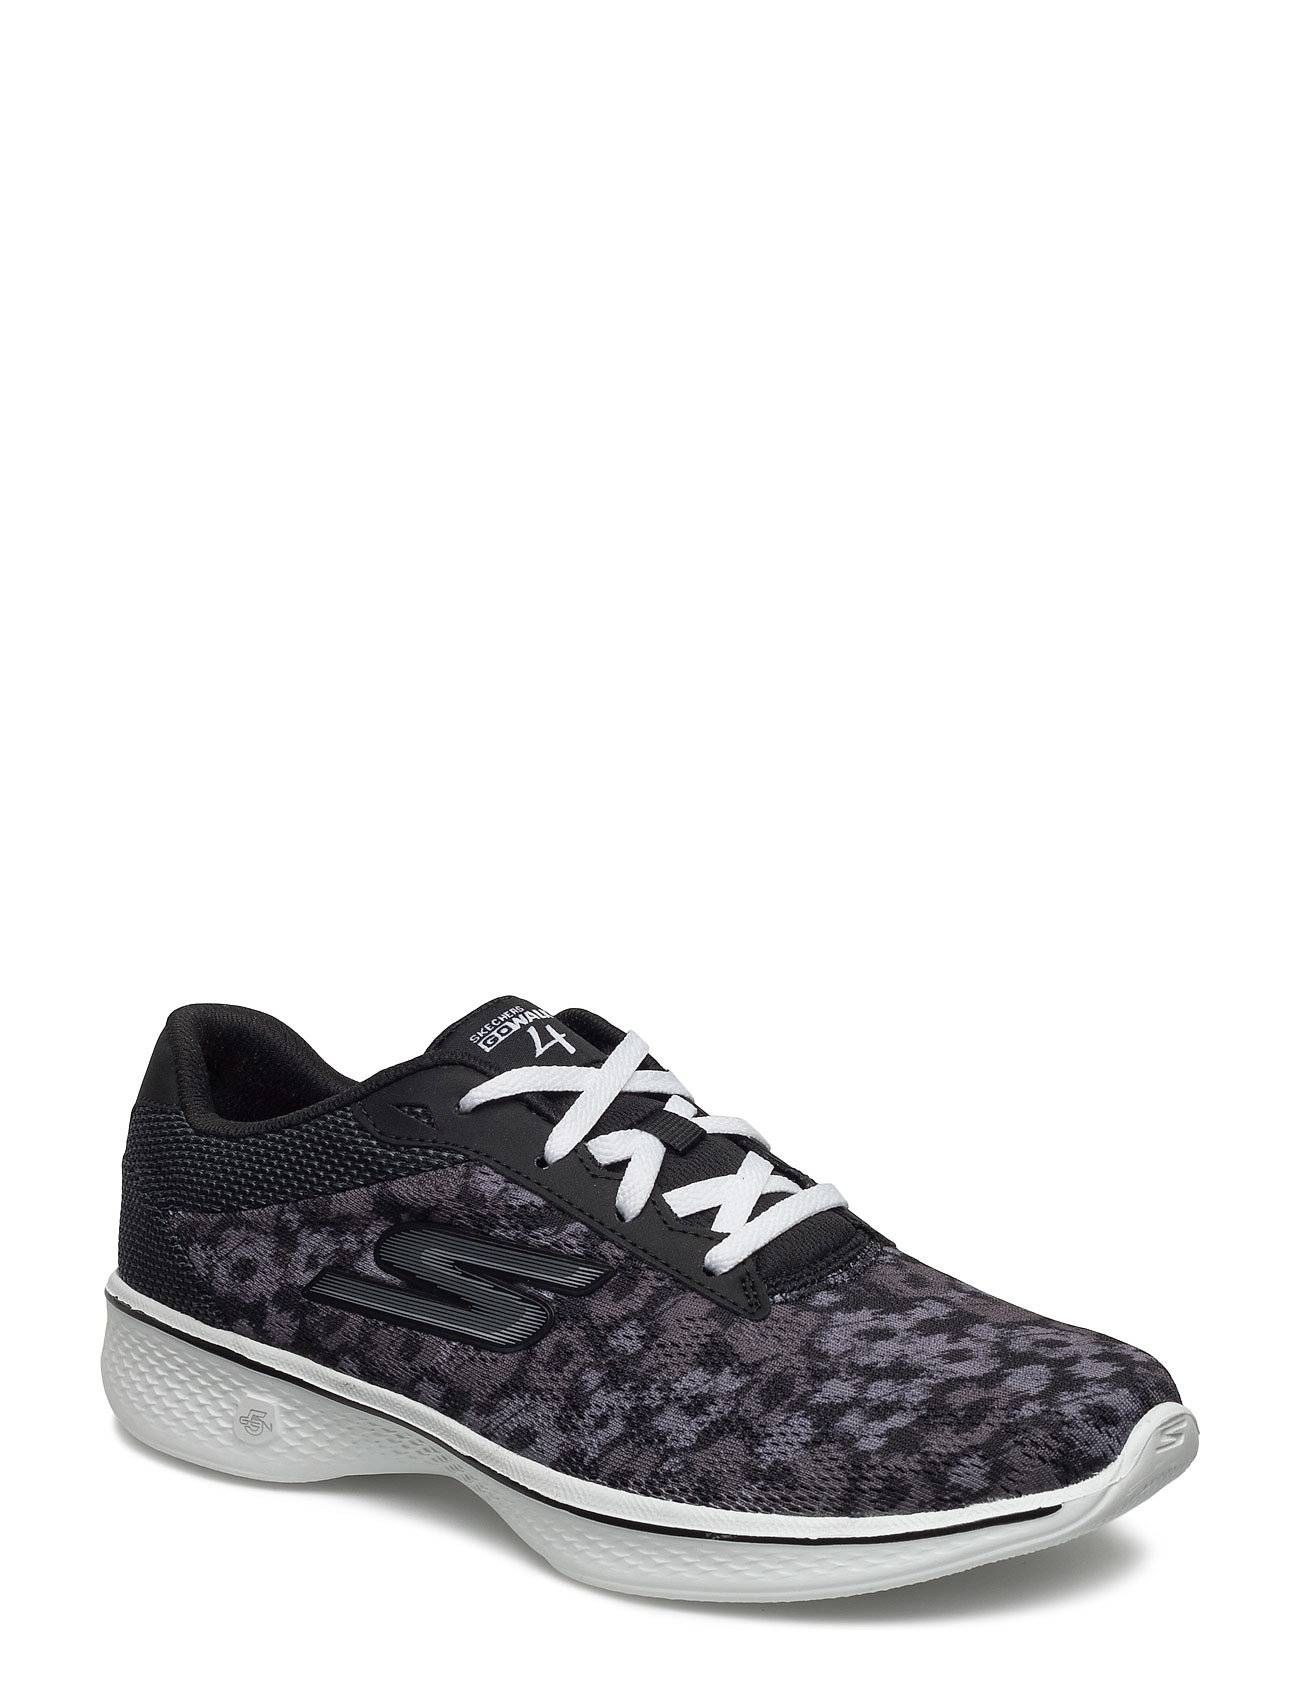 Skechers Womens Go Walk 4- Excite